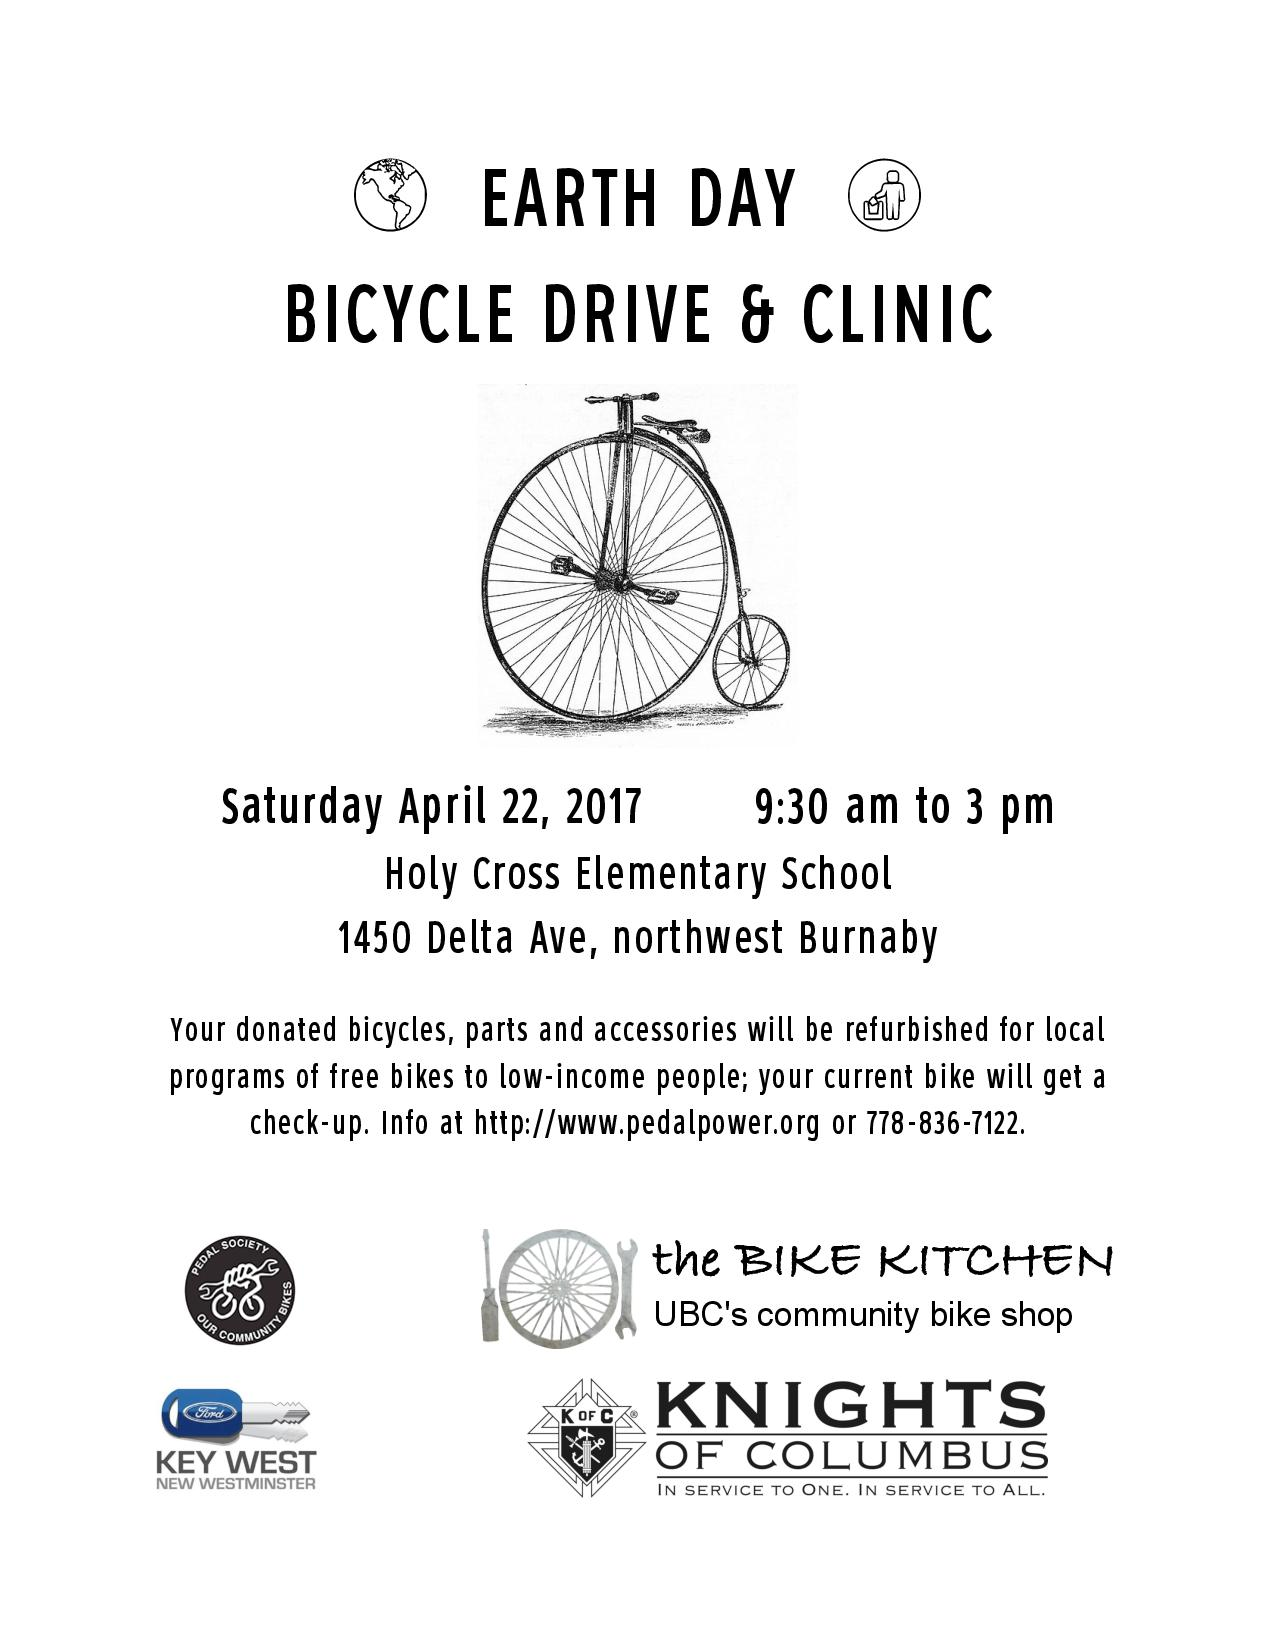 EARTH DAY BICYCLE DRIVE AND BIKE CLINIC - Got an old bicycle just lying around? Now's the time to find it a good home! On Earth Day, Saturday April 22 from 9:30 am to 3 pm at Holy Cross School, 1450 Delta Ave in northwest Burnaby, you can drop off your used bikes and bike parts, tools, helmets, lights and other accessories to be refurbished for distribution to low-income people in the Greater Vancouver Area; also, bring in your current bike for a free check-up. Info at http://www.pedalpower.org/pedals-for-the-people.html or 778-836-7122. Sponsored by Our Community Bikes, the UBC Bike Kitchen, Key West Ford and Council 5423 of the Knights of Columbus.